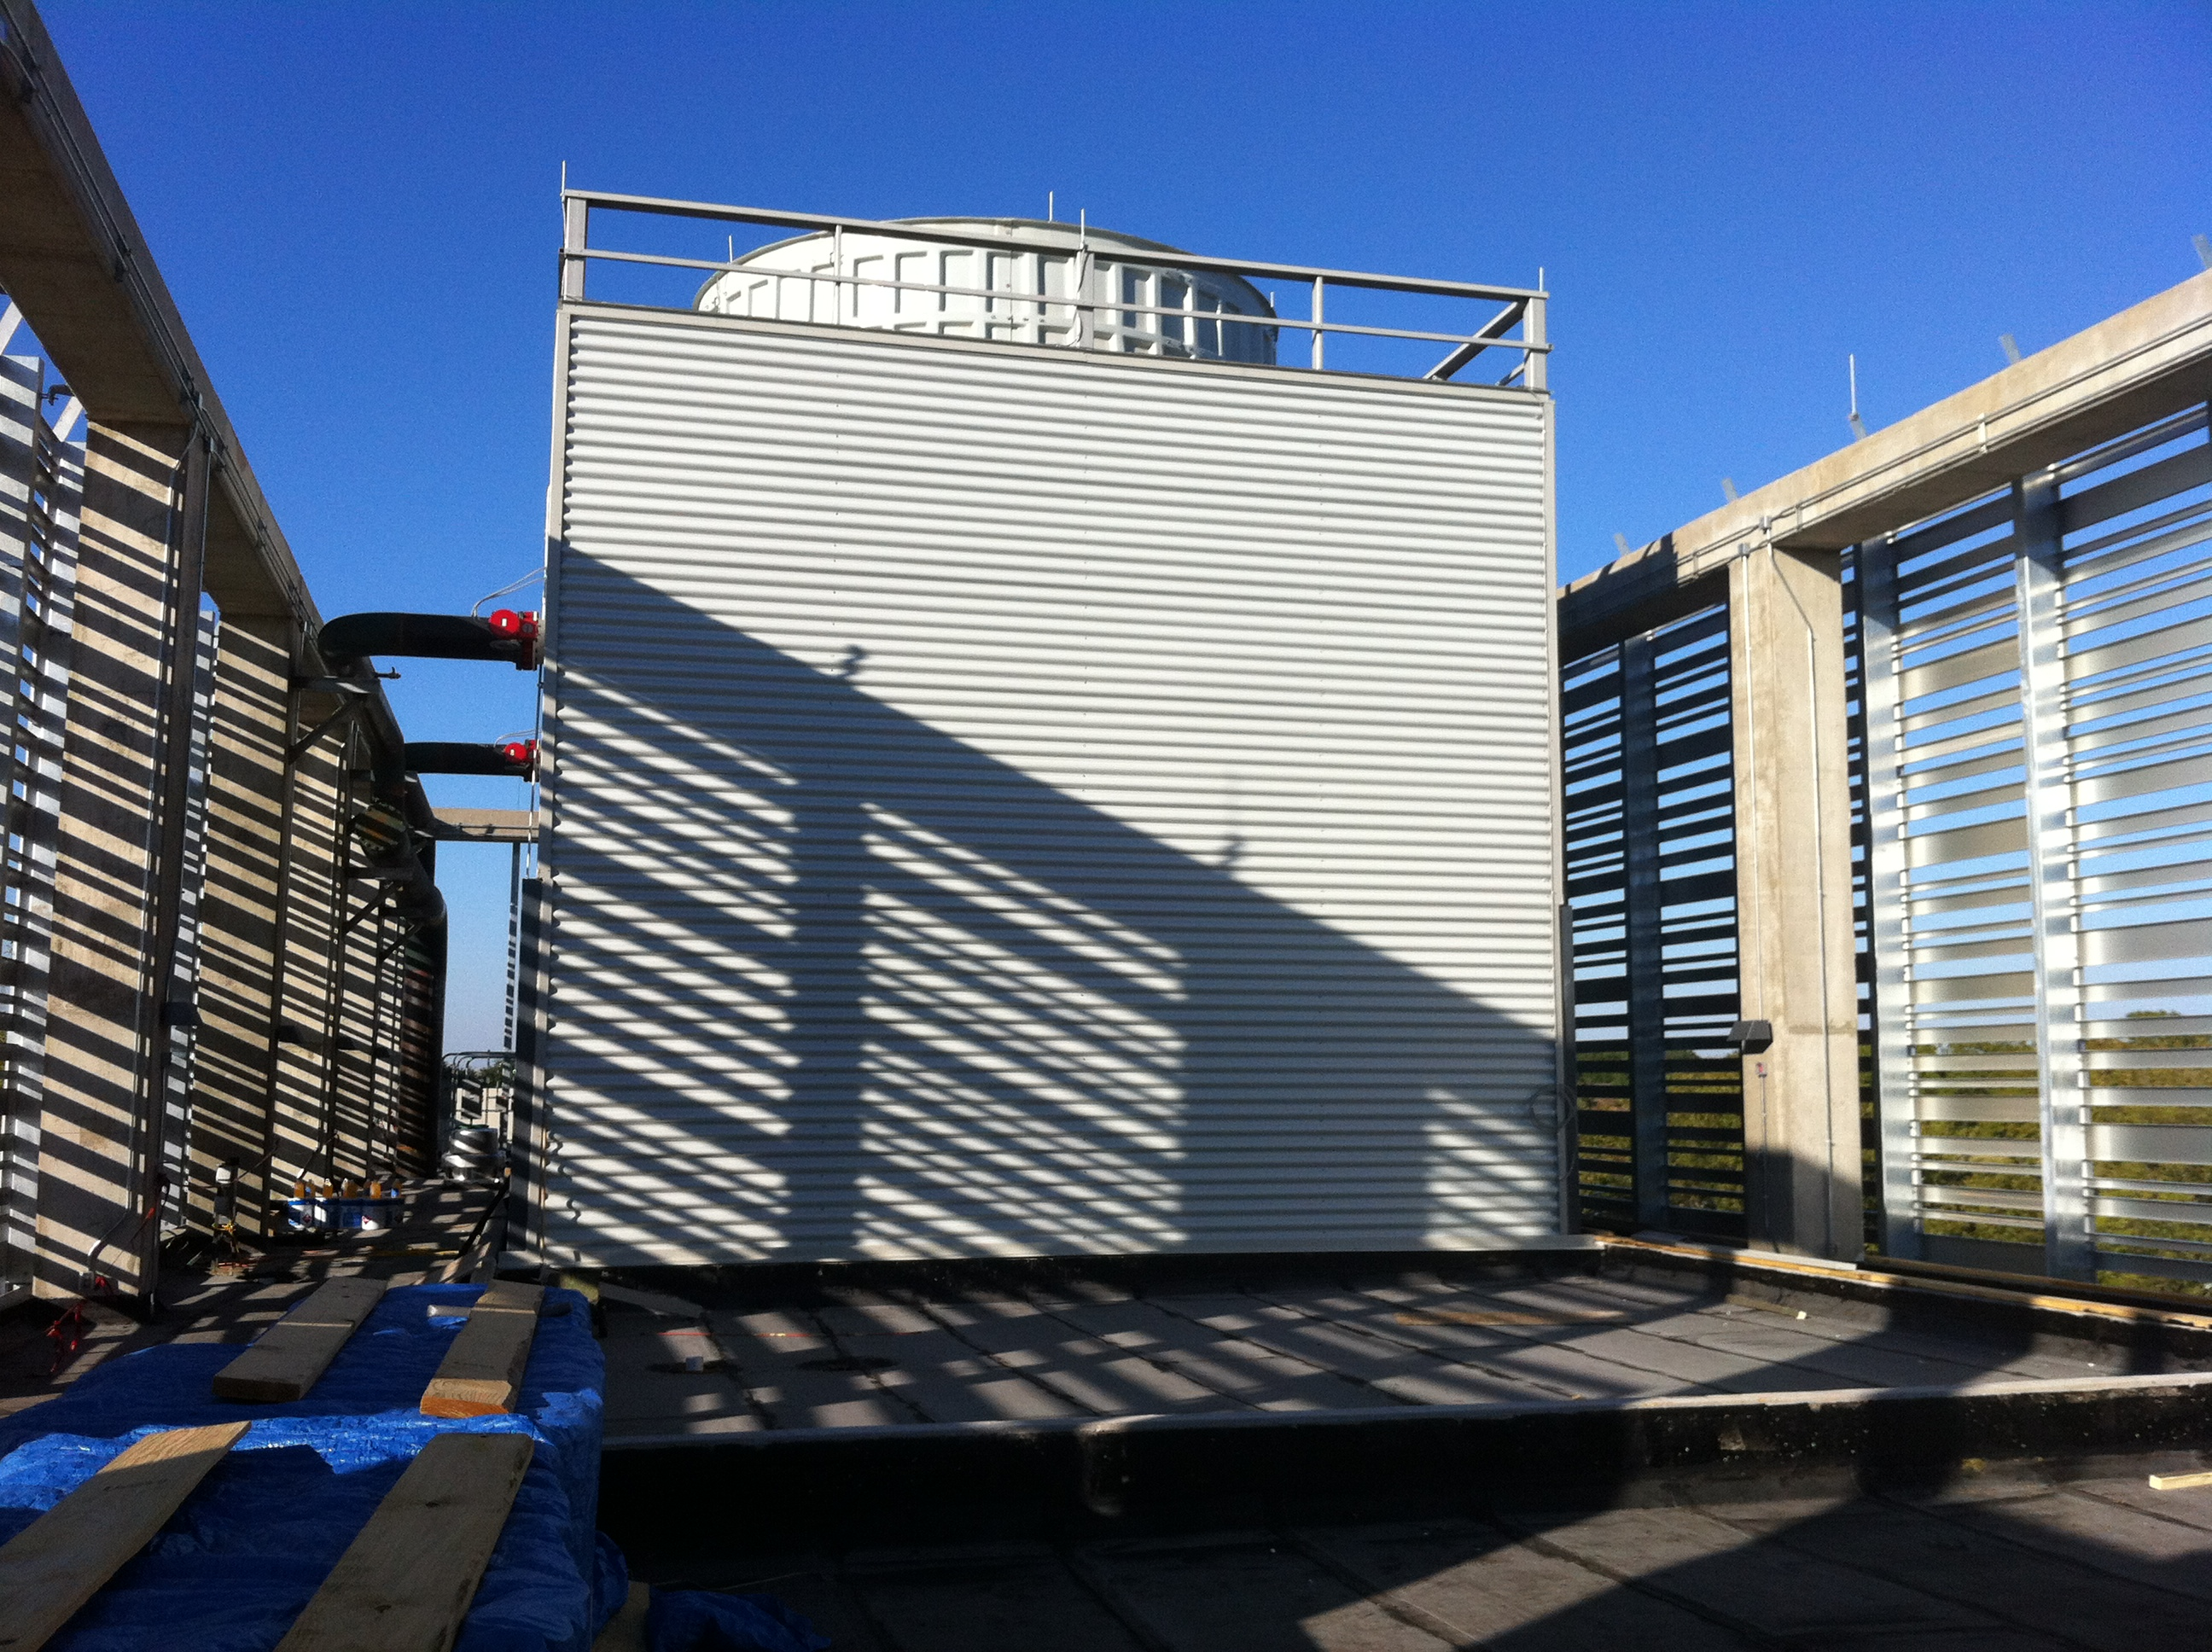 Exterior of a cooling tower